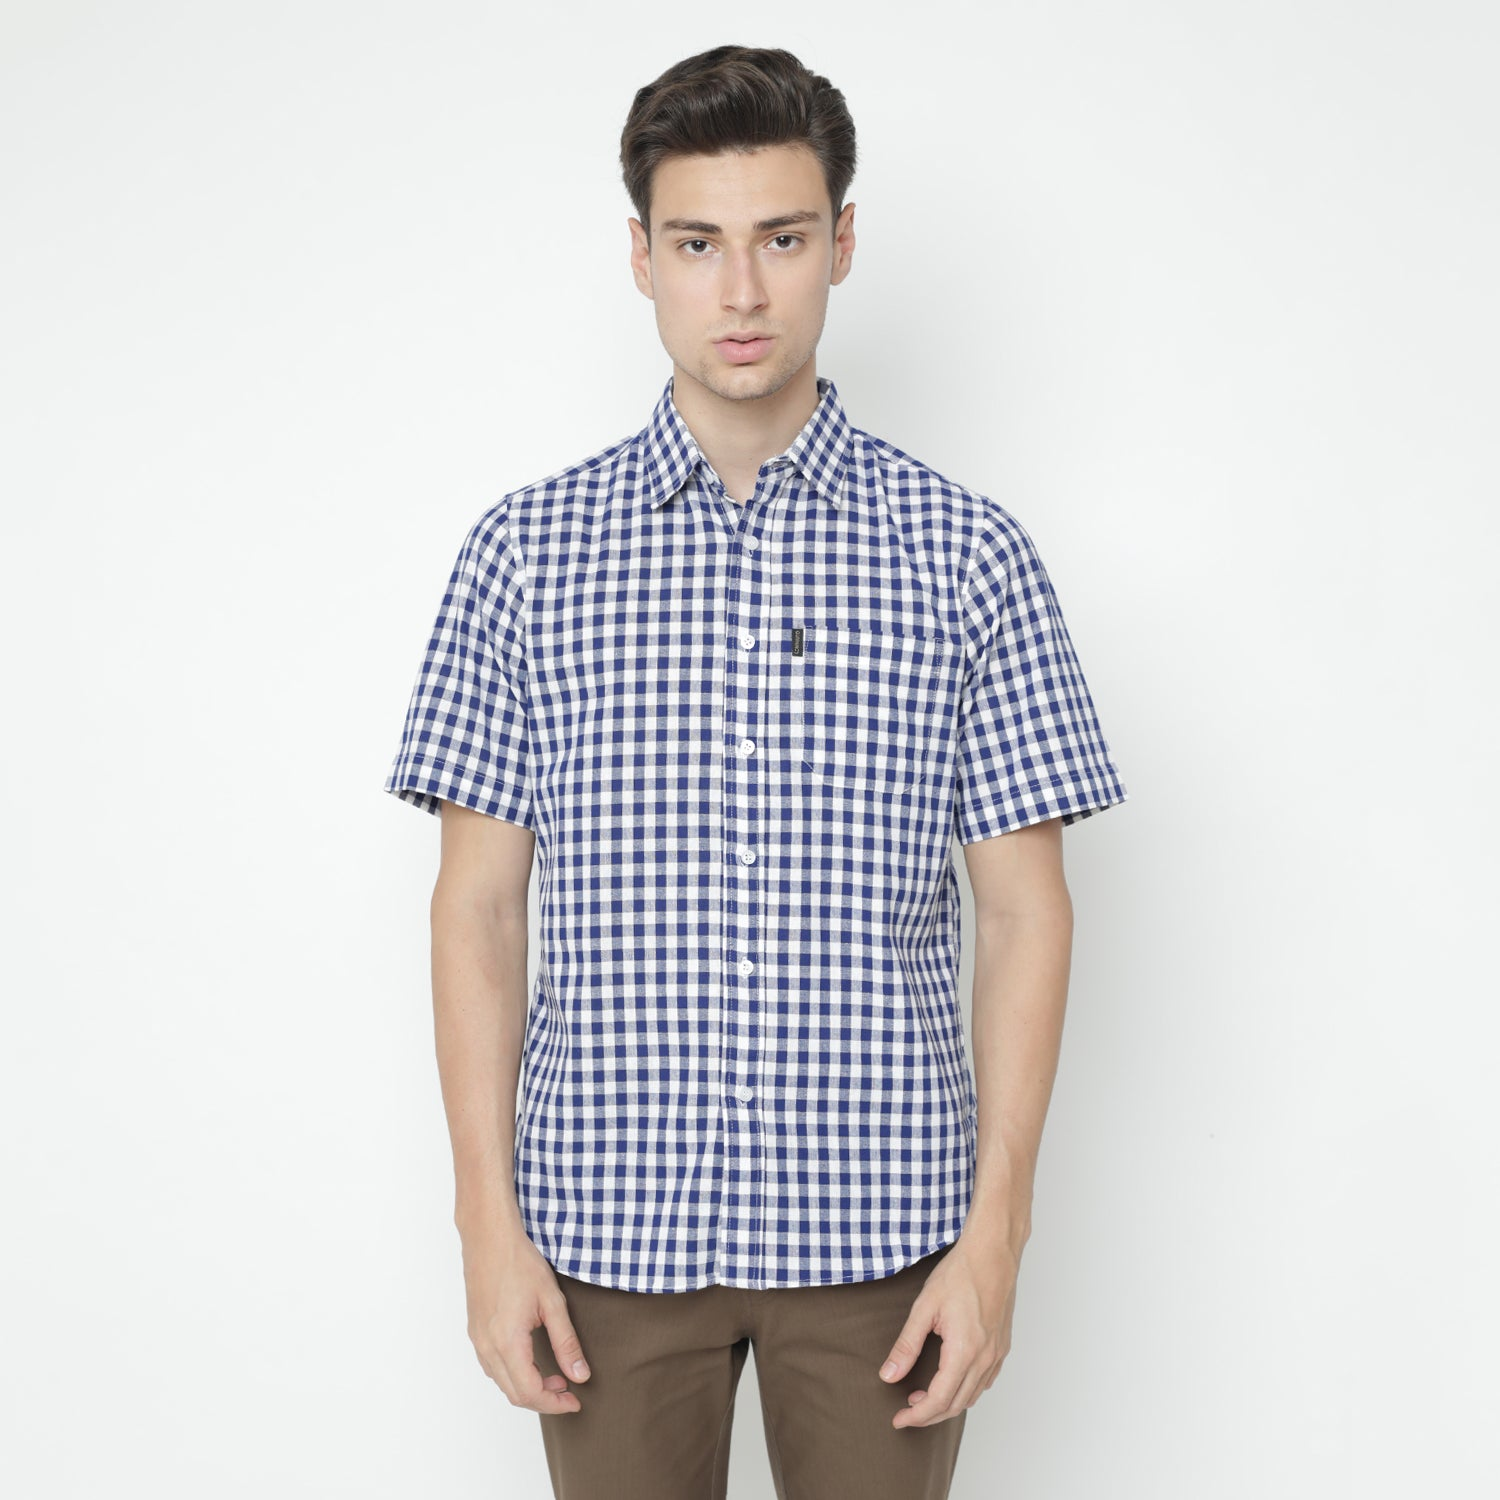 Saville Plaid Blue Shirt